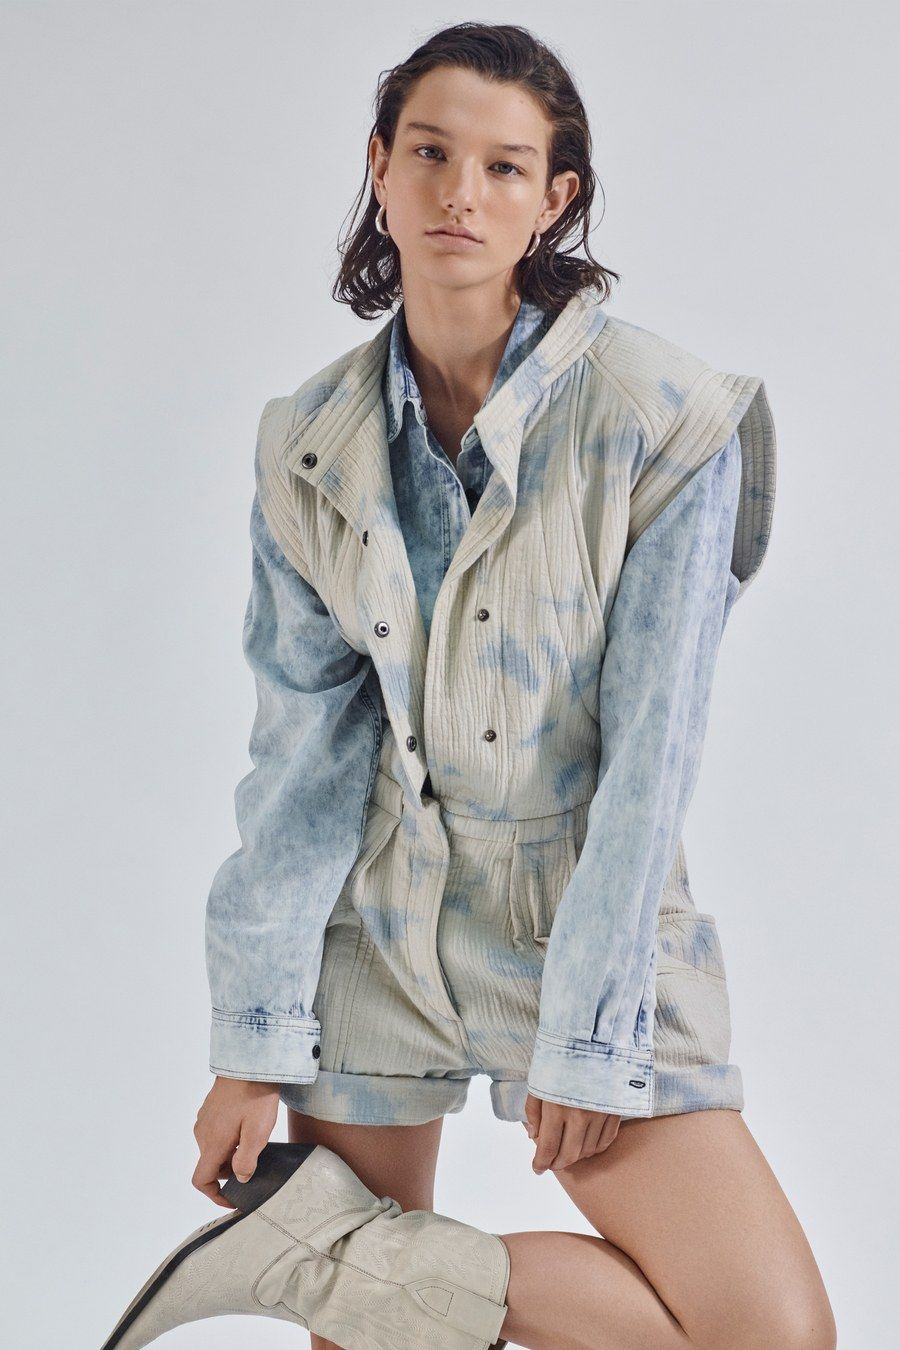 Étoile Isabel Marant Spring 2020 Ready-to-Wear Fashion Show